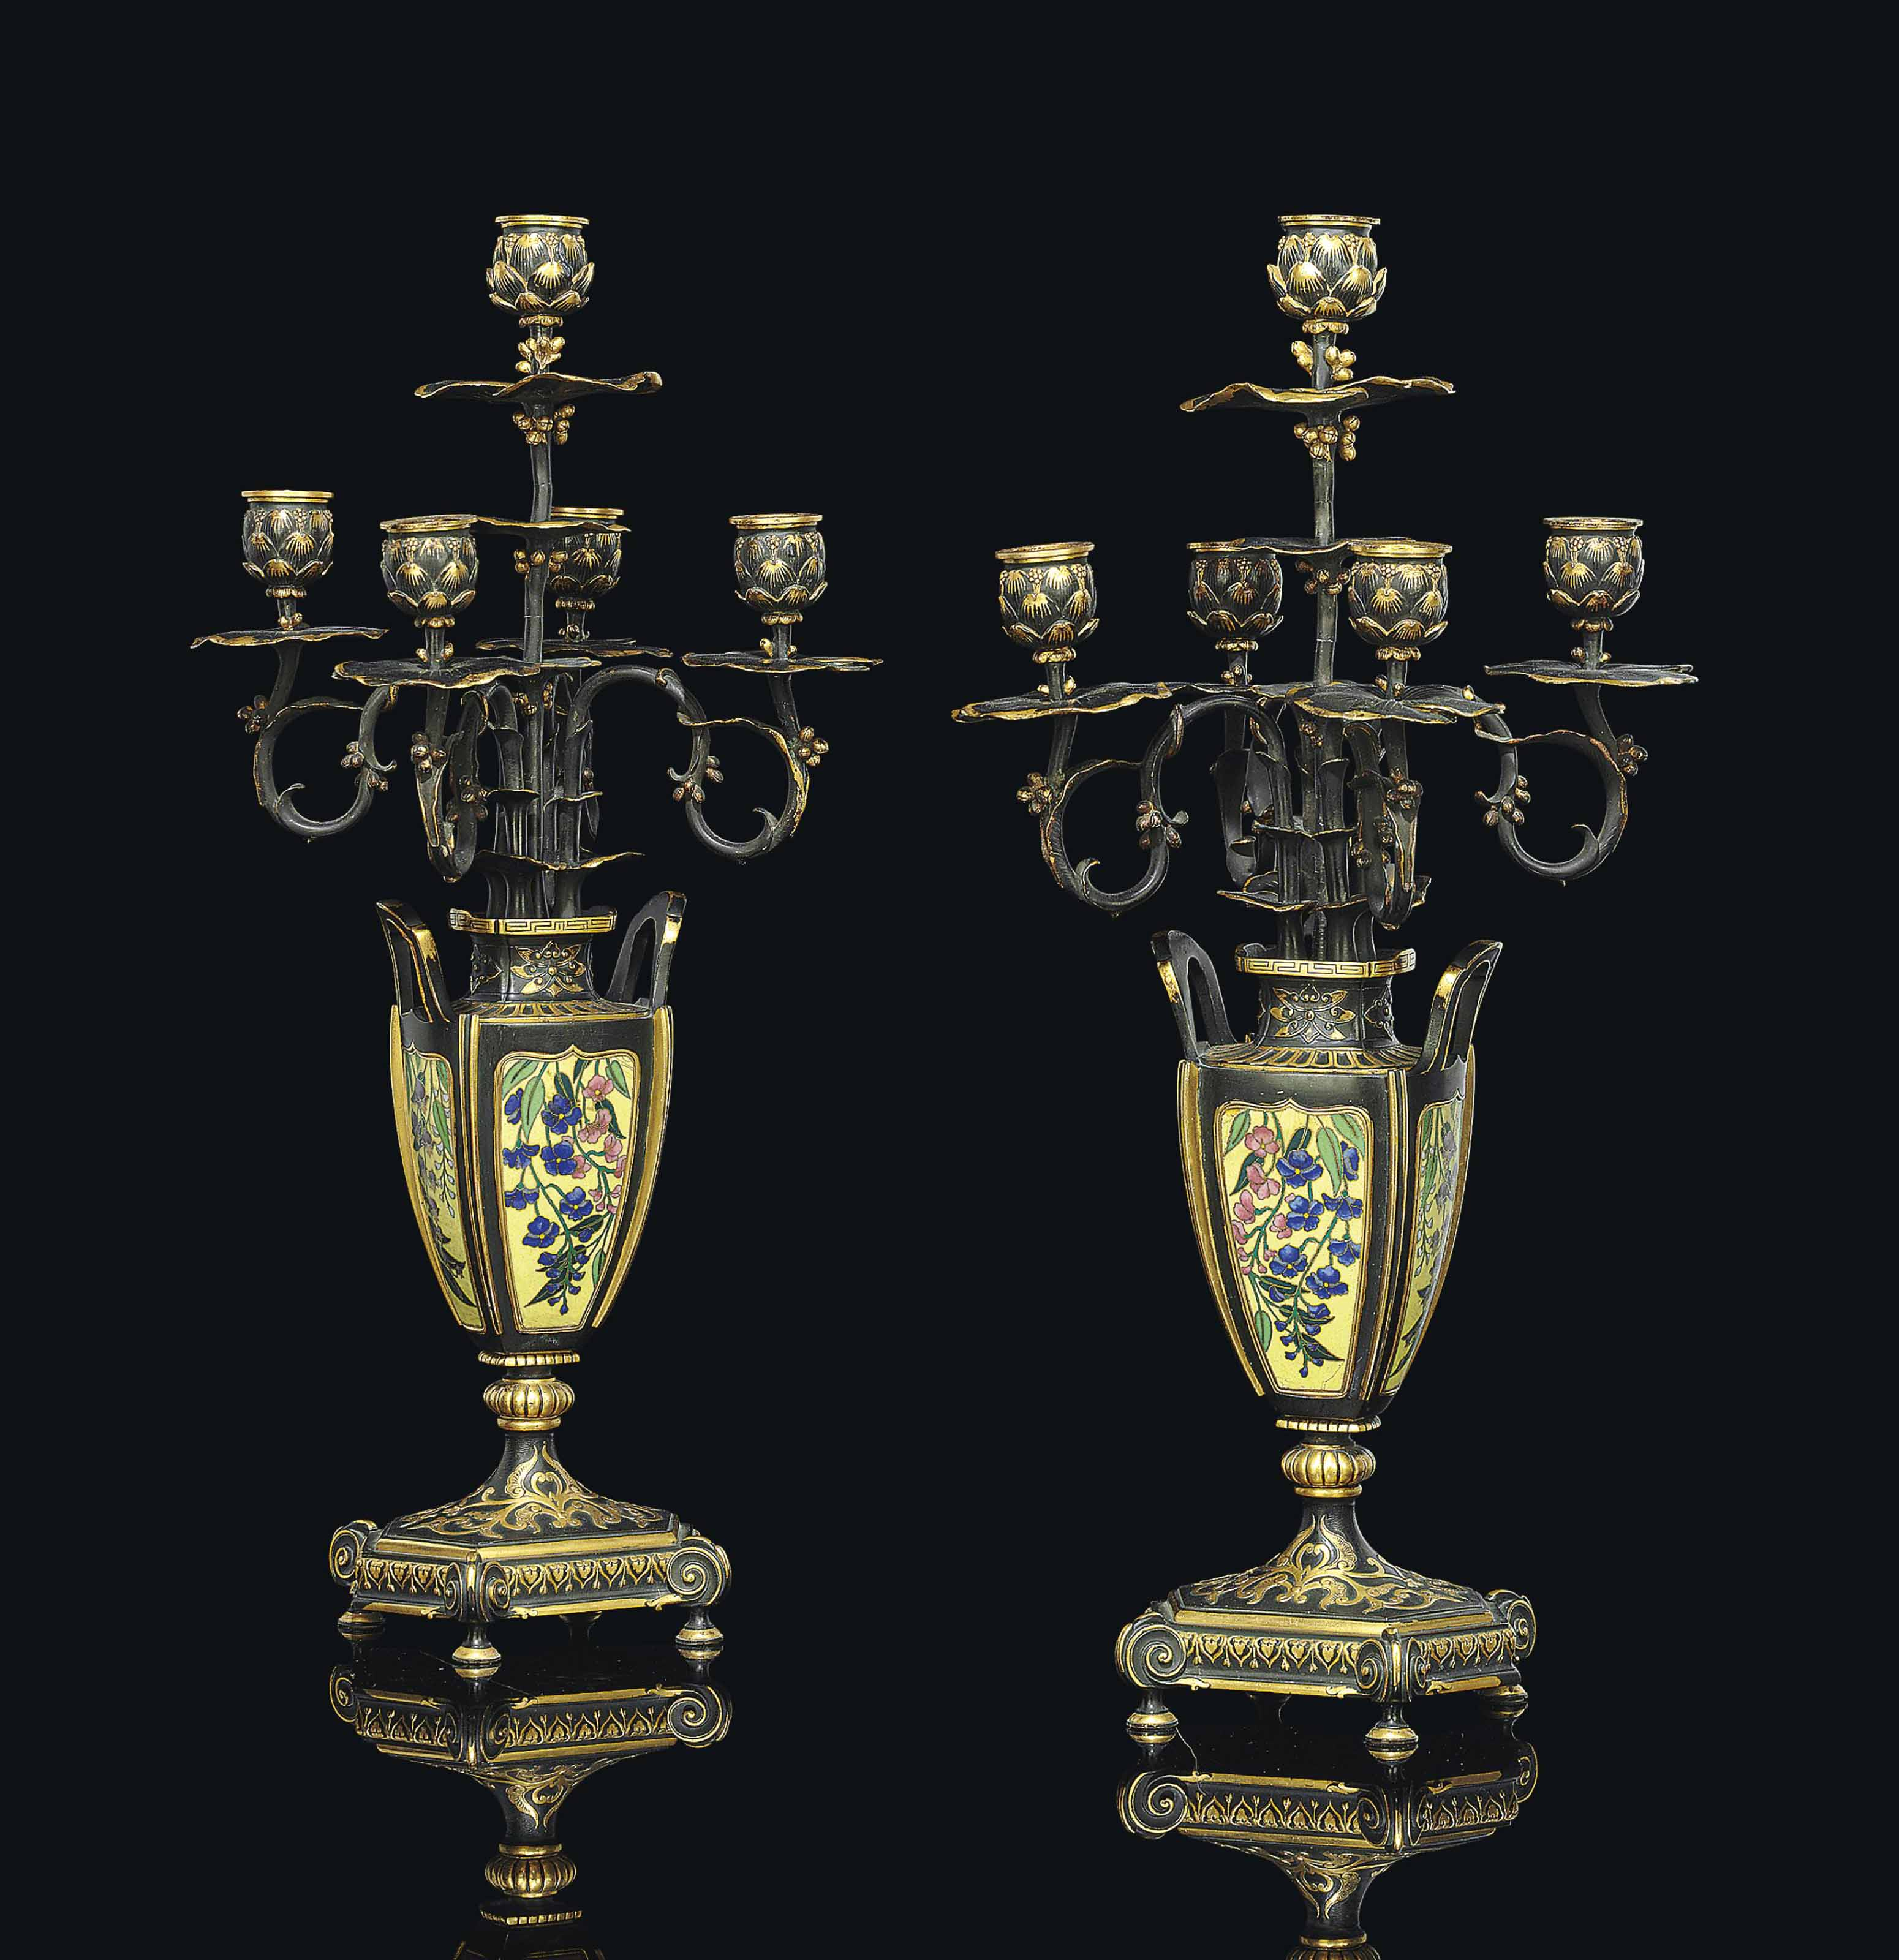 A PAIR OF FRENCH 'JAPONISME' GILT AND PATINATED BRONZE AND ENAMEL FIVE-LIGHT CANDELABRA